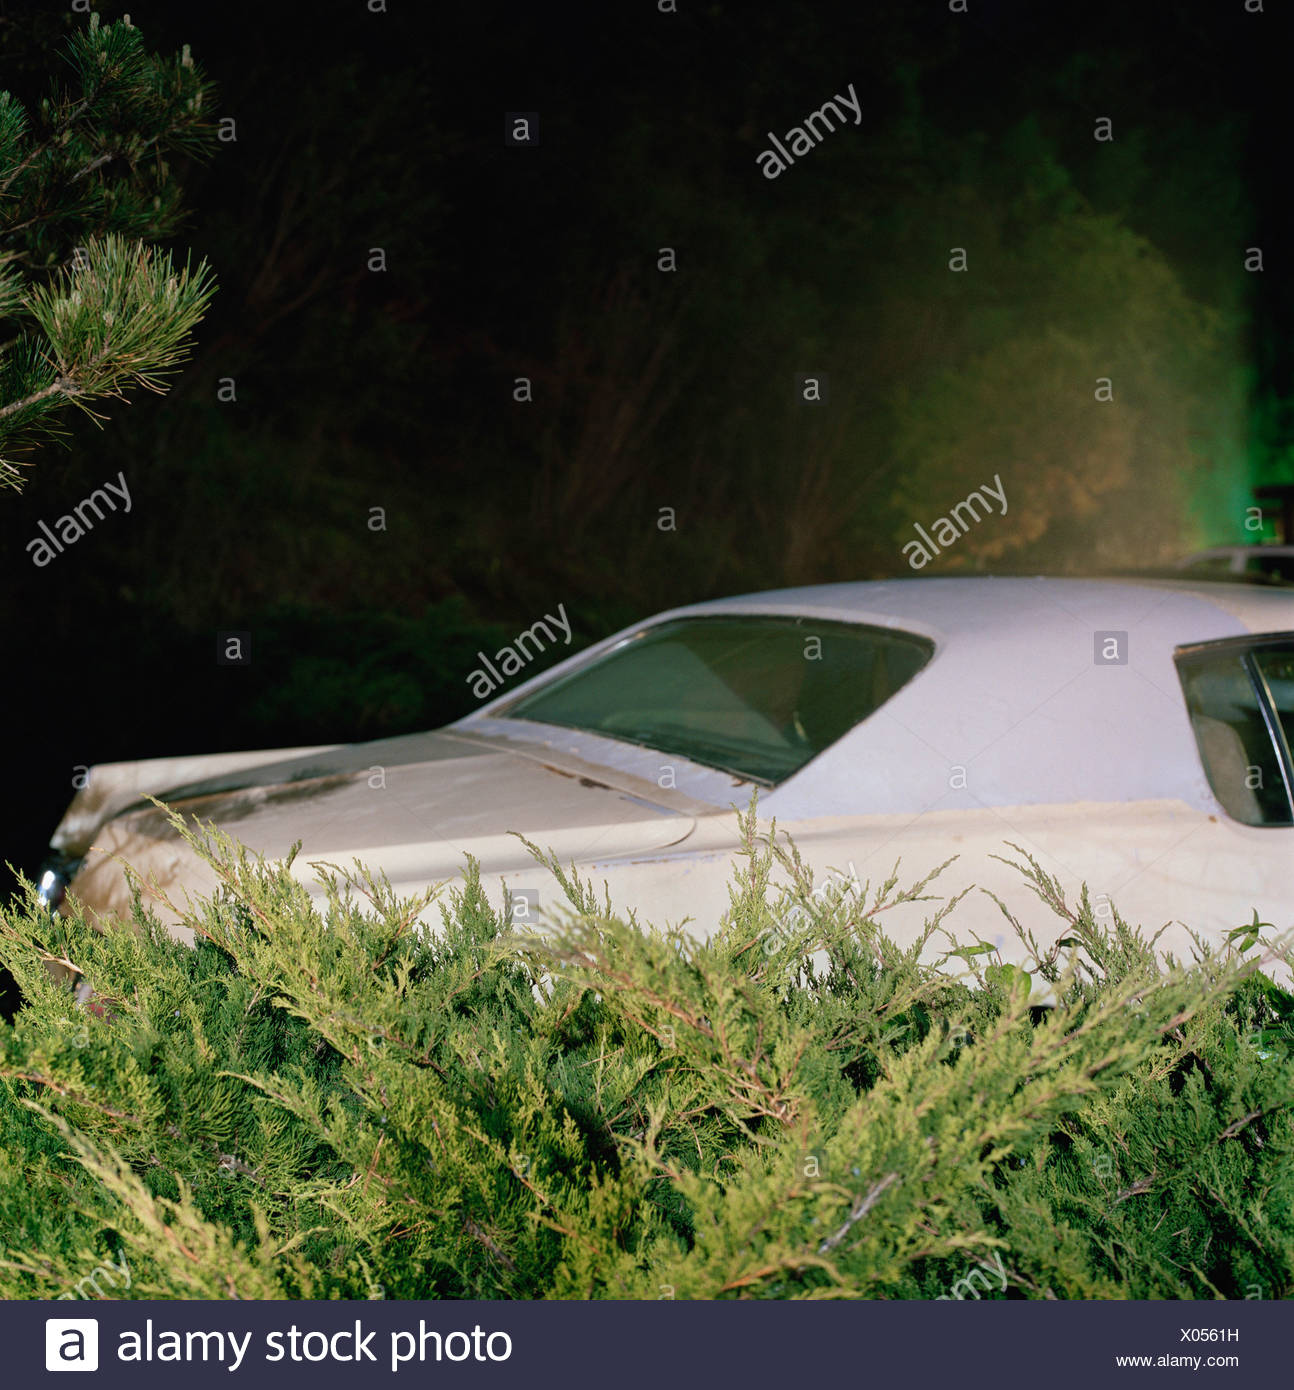 Car Parked In A Driveway At Night Stock Photo 275480397 Alamy